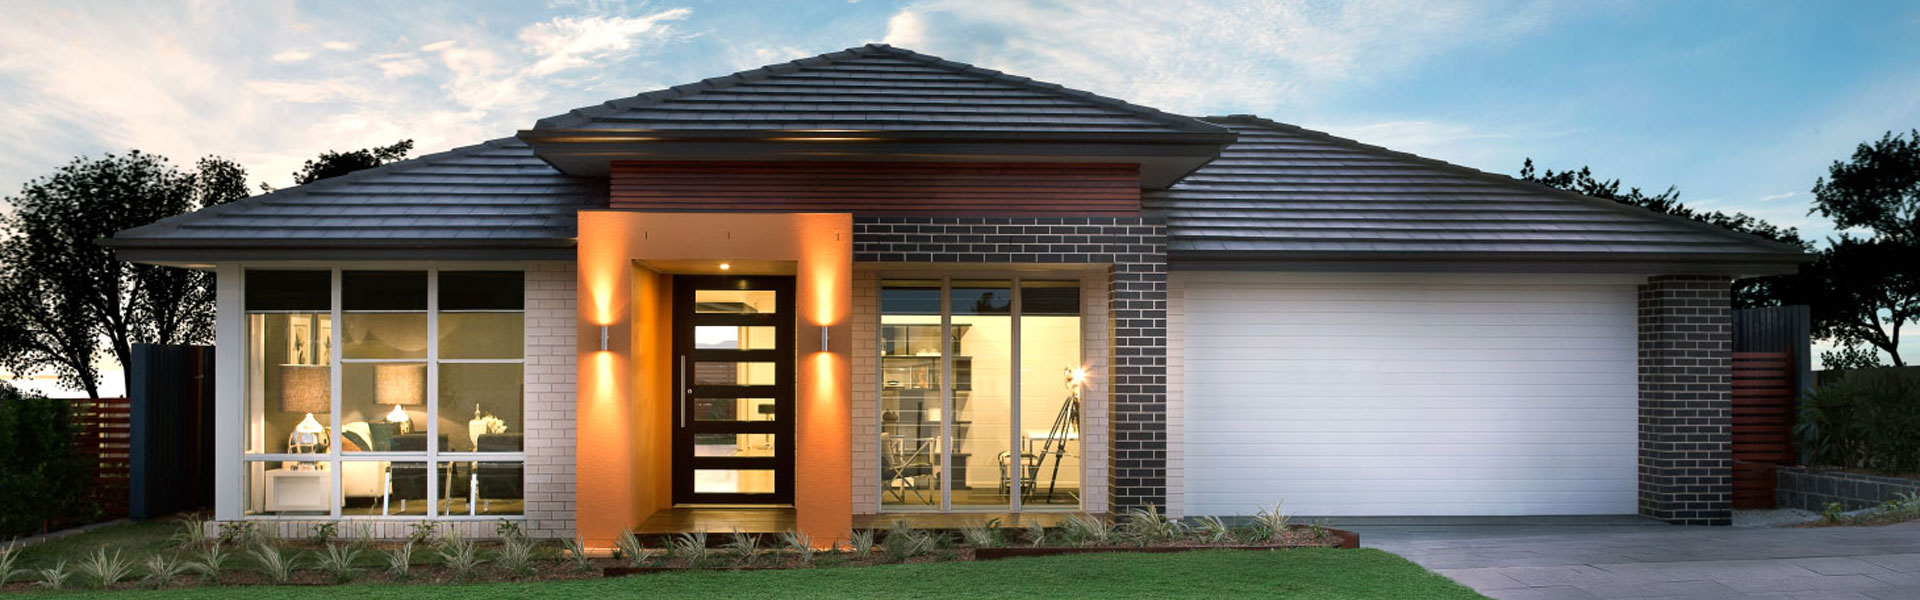 "<h1>Re-Roofing Specialists<br /><span>Melbourne</span></h1><p>Looking to replace your old tiled roof? We are a leading re-roofing specialist with over 50 years experience providing re-roofing services to all parts of Melbourne.<br /><a href=""contact-us"">Obtain Quote</a></p>"